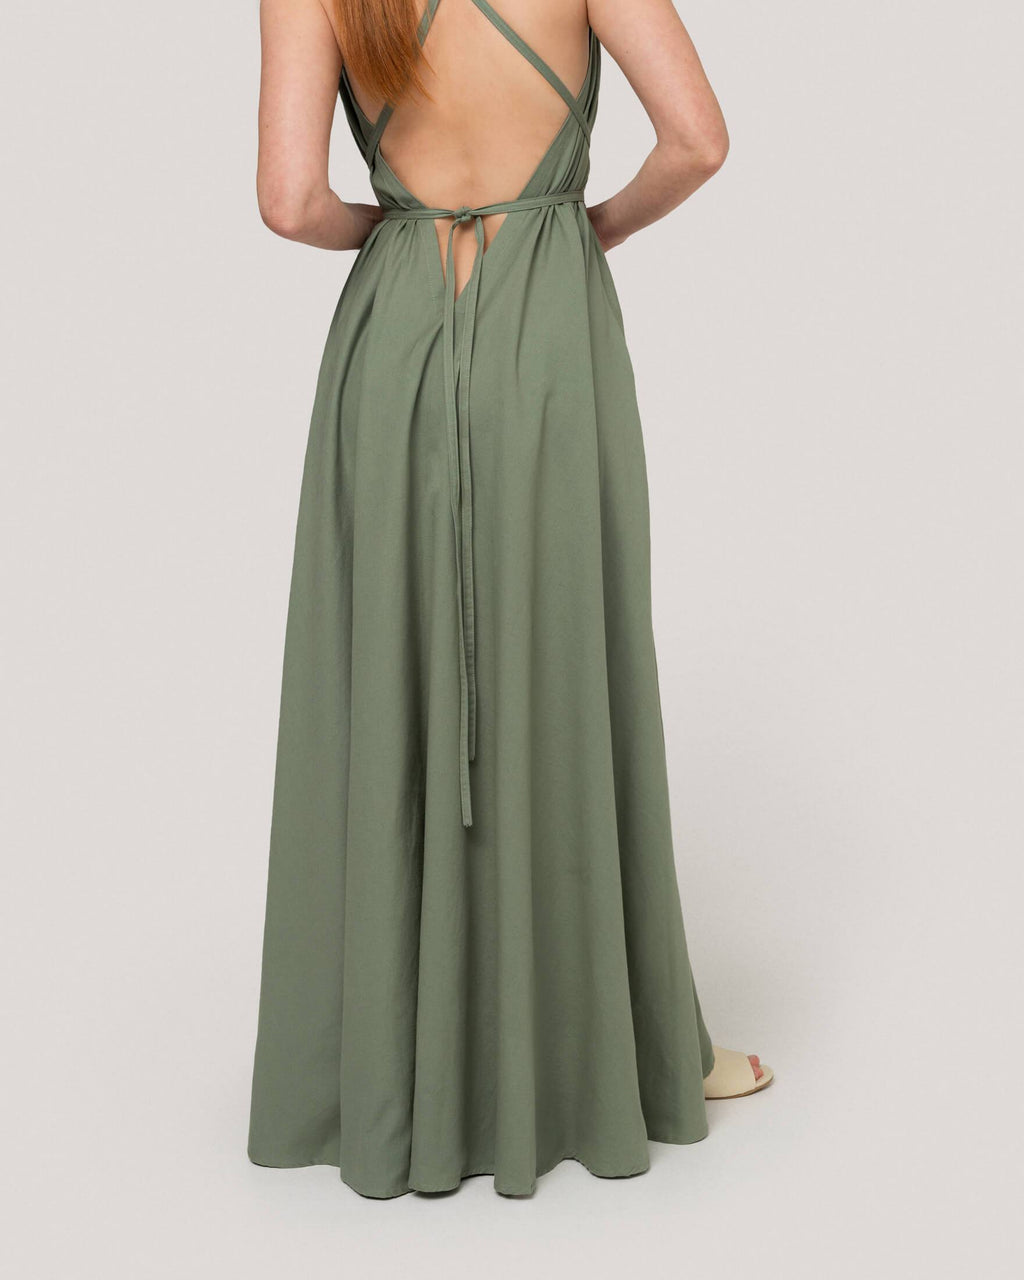 variant_3 | EN Green Dress Summer Women Suite13 | DE Grünes Kleid Lang Damen Suite13